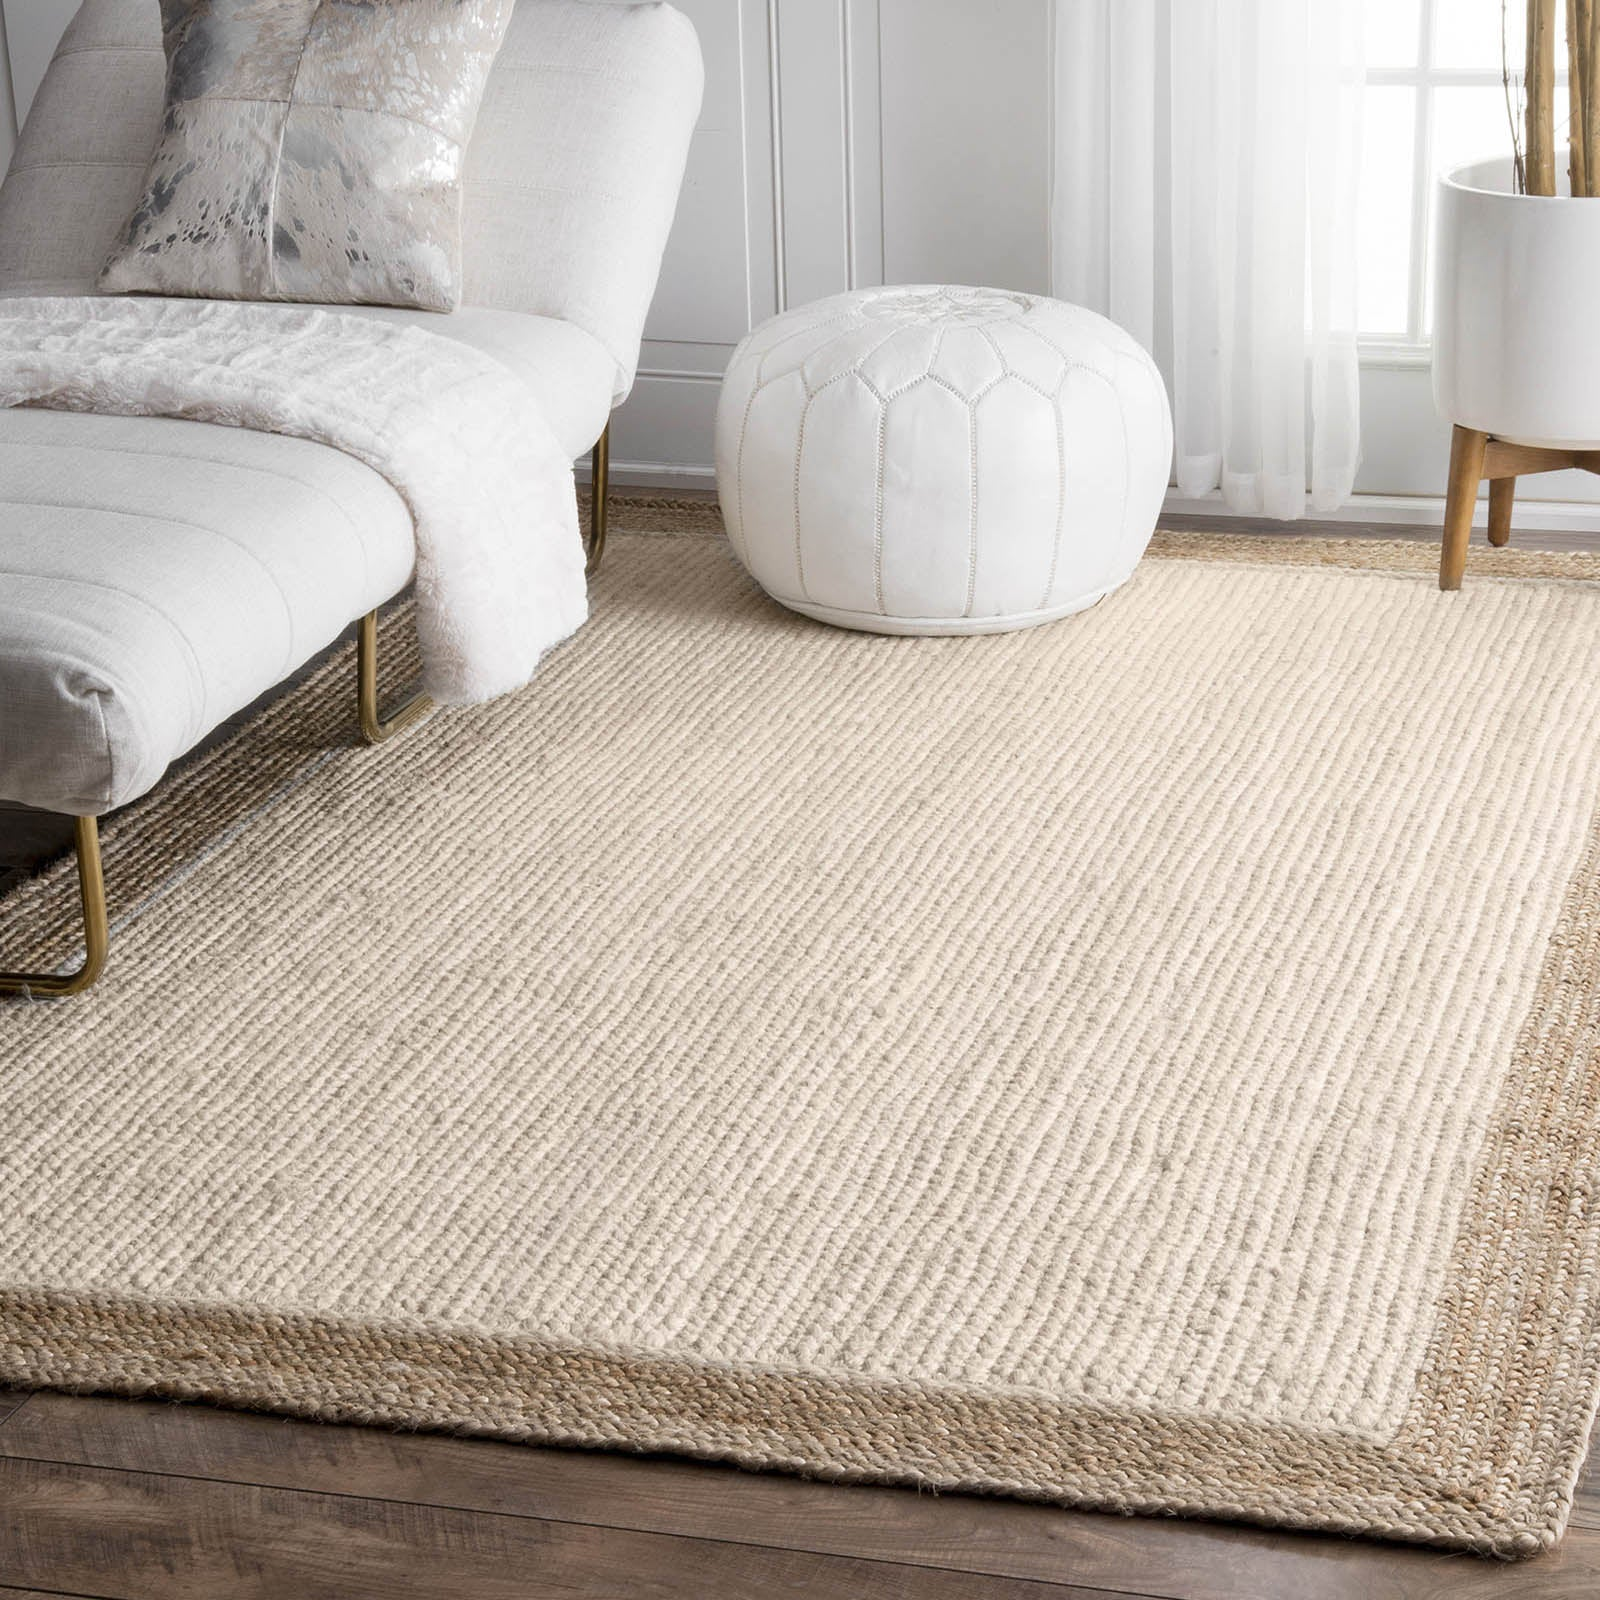 300X200 cm Braided handmade Jute Rug Braided-001-XL -  300X200 سم سجادة من الجوت مضفر يدويًا - Shop Online Furniture and Home Decor Store in Dubai, UAE at ebarza